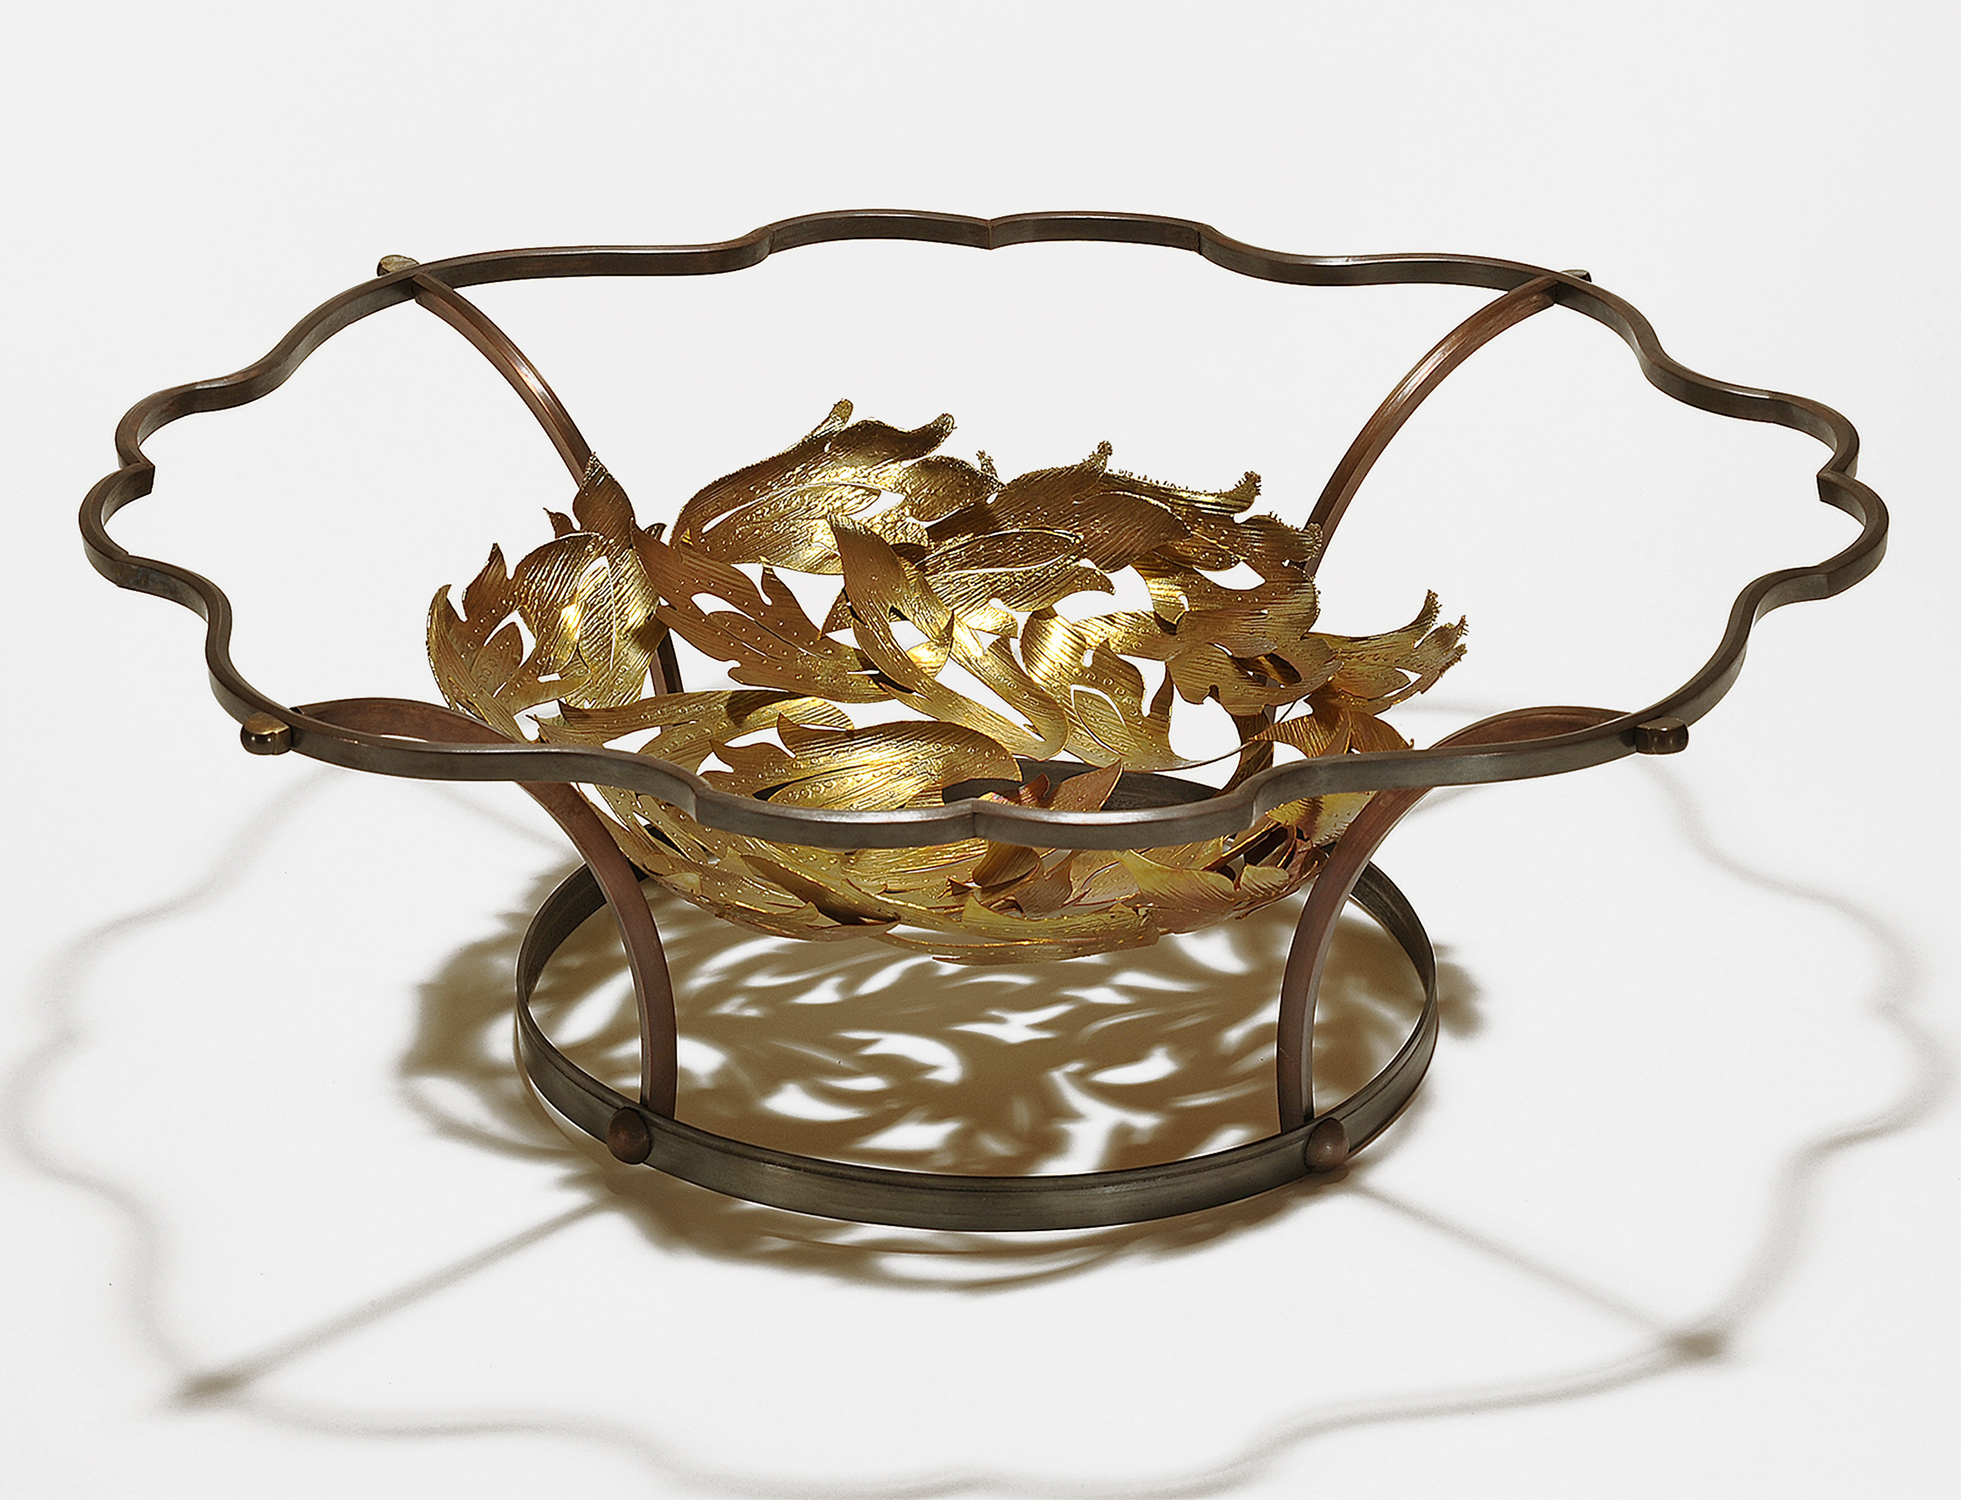 Offering  |  2012  |  brass, copper  |  5.25 x 16 x 16 inches